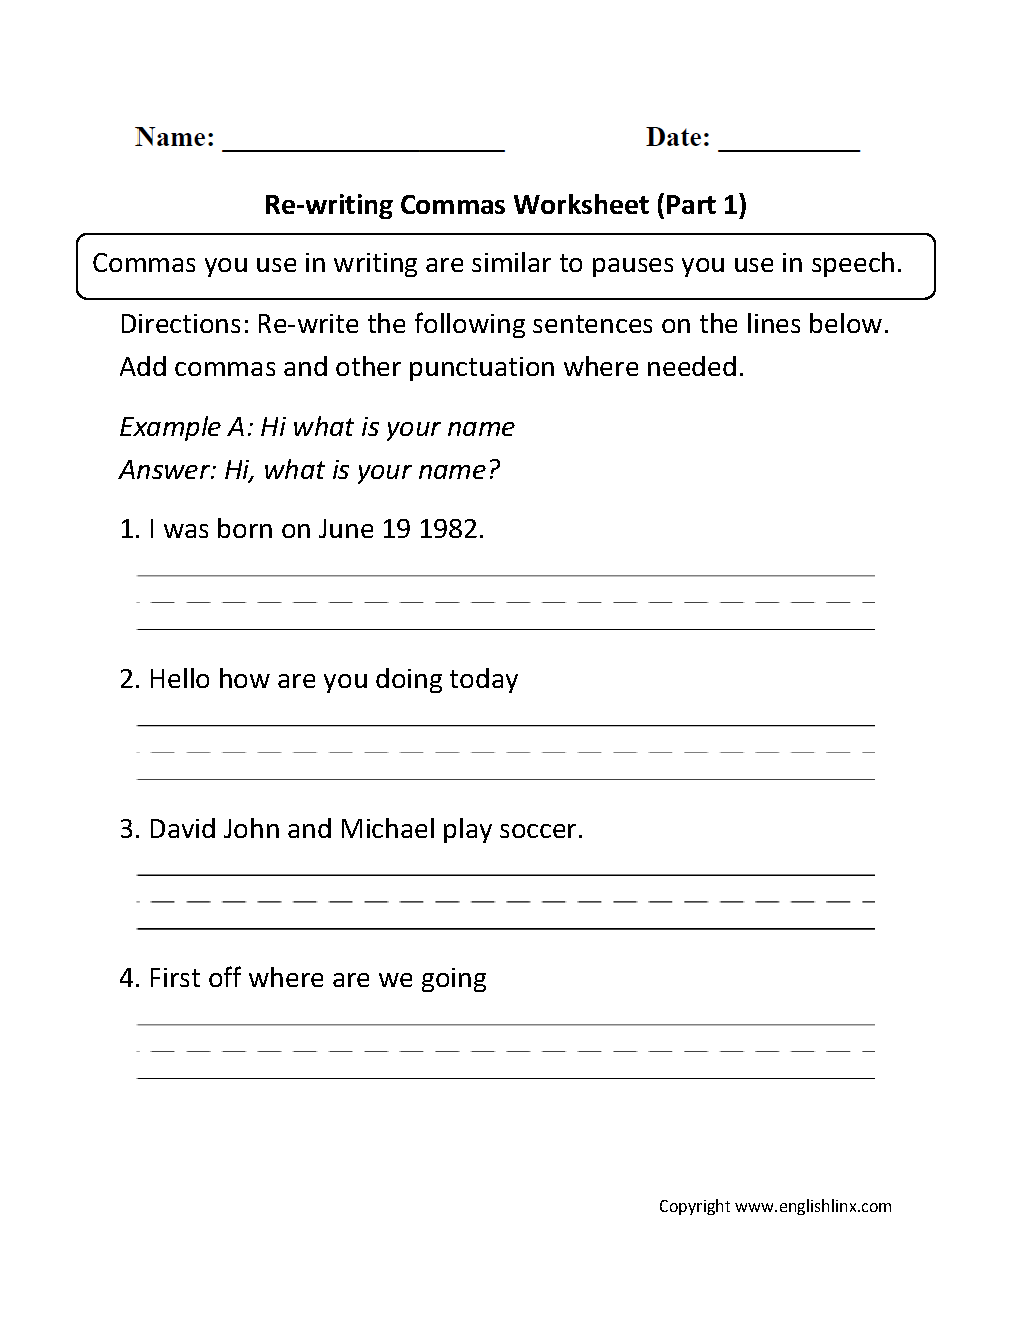 Worksheets Comma Practice Worksheets englishlinx com commas worksheets part 1